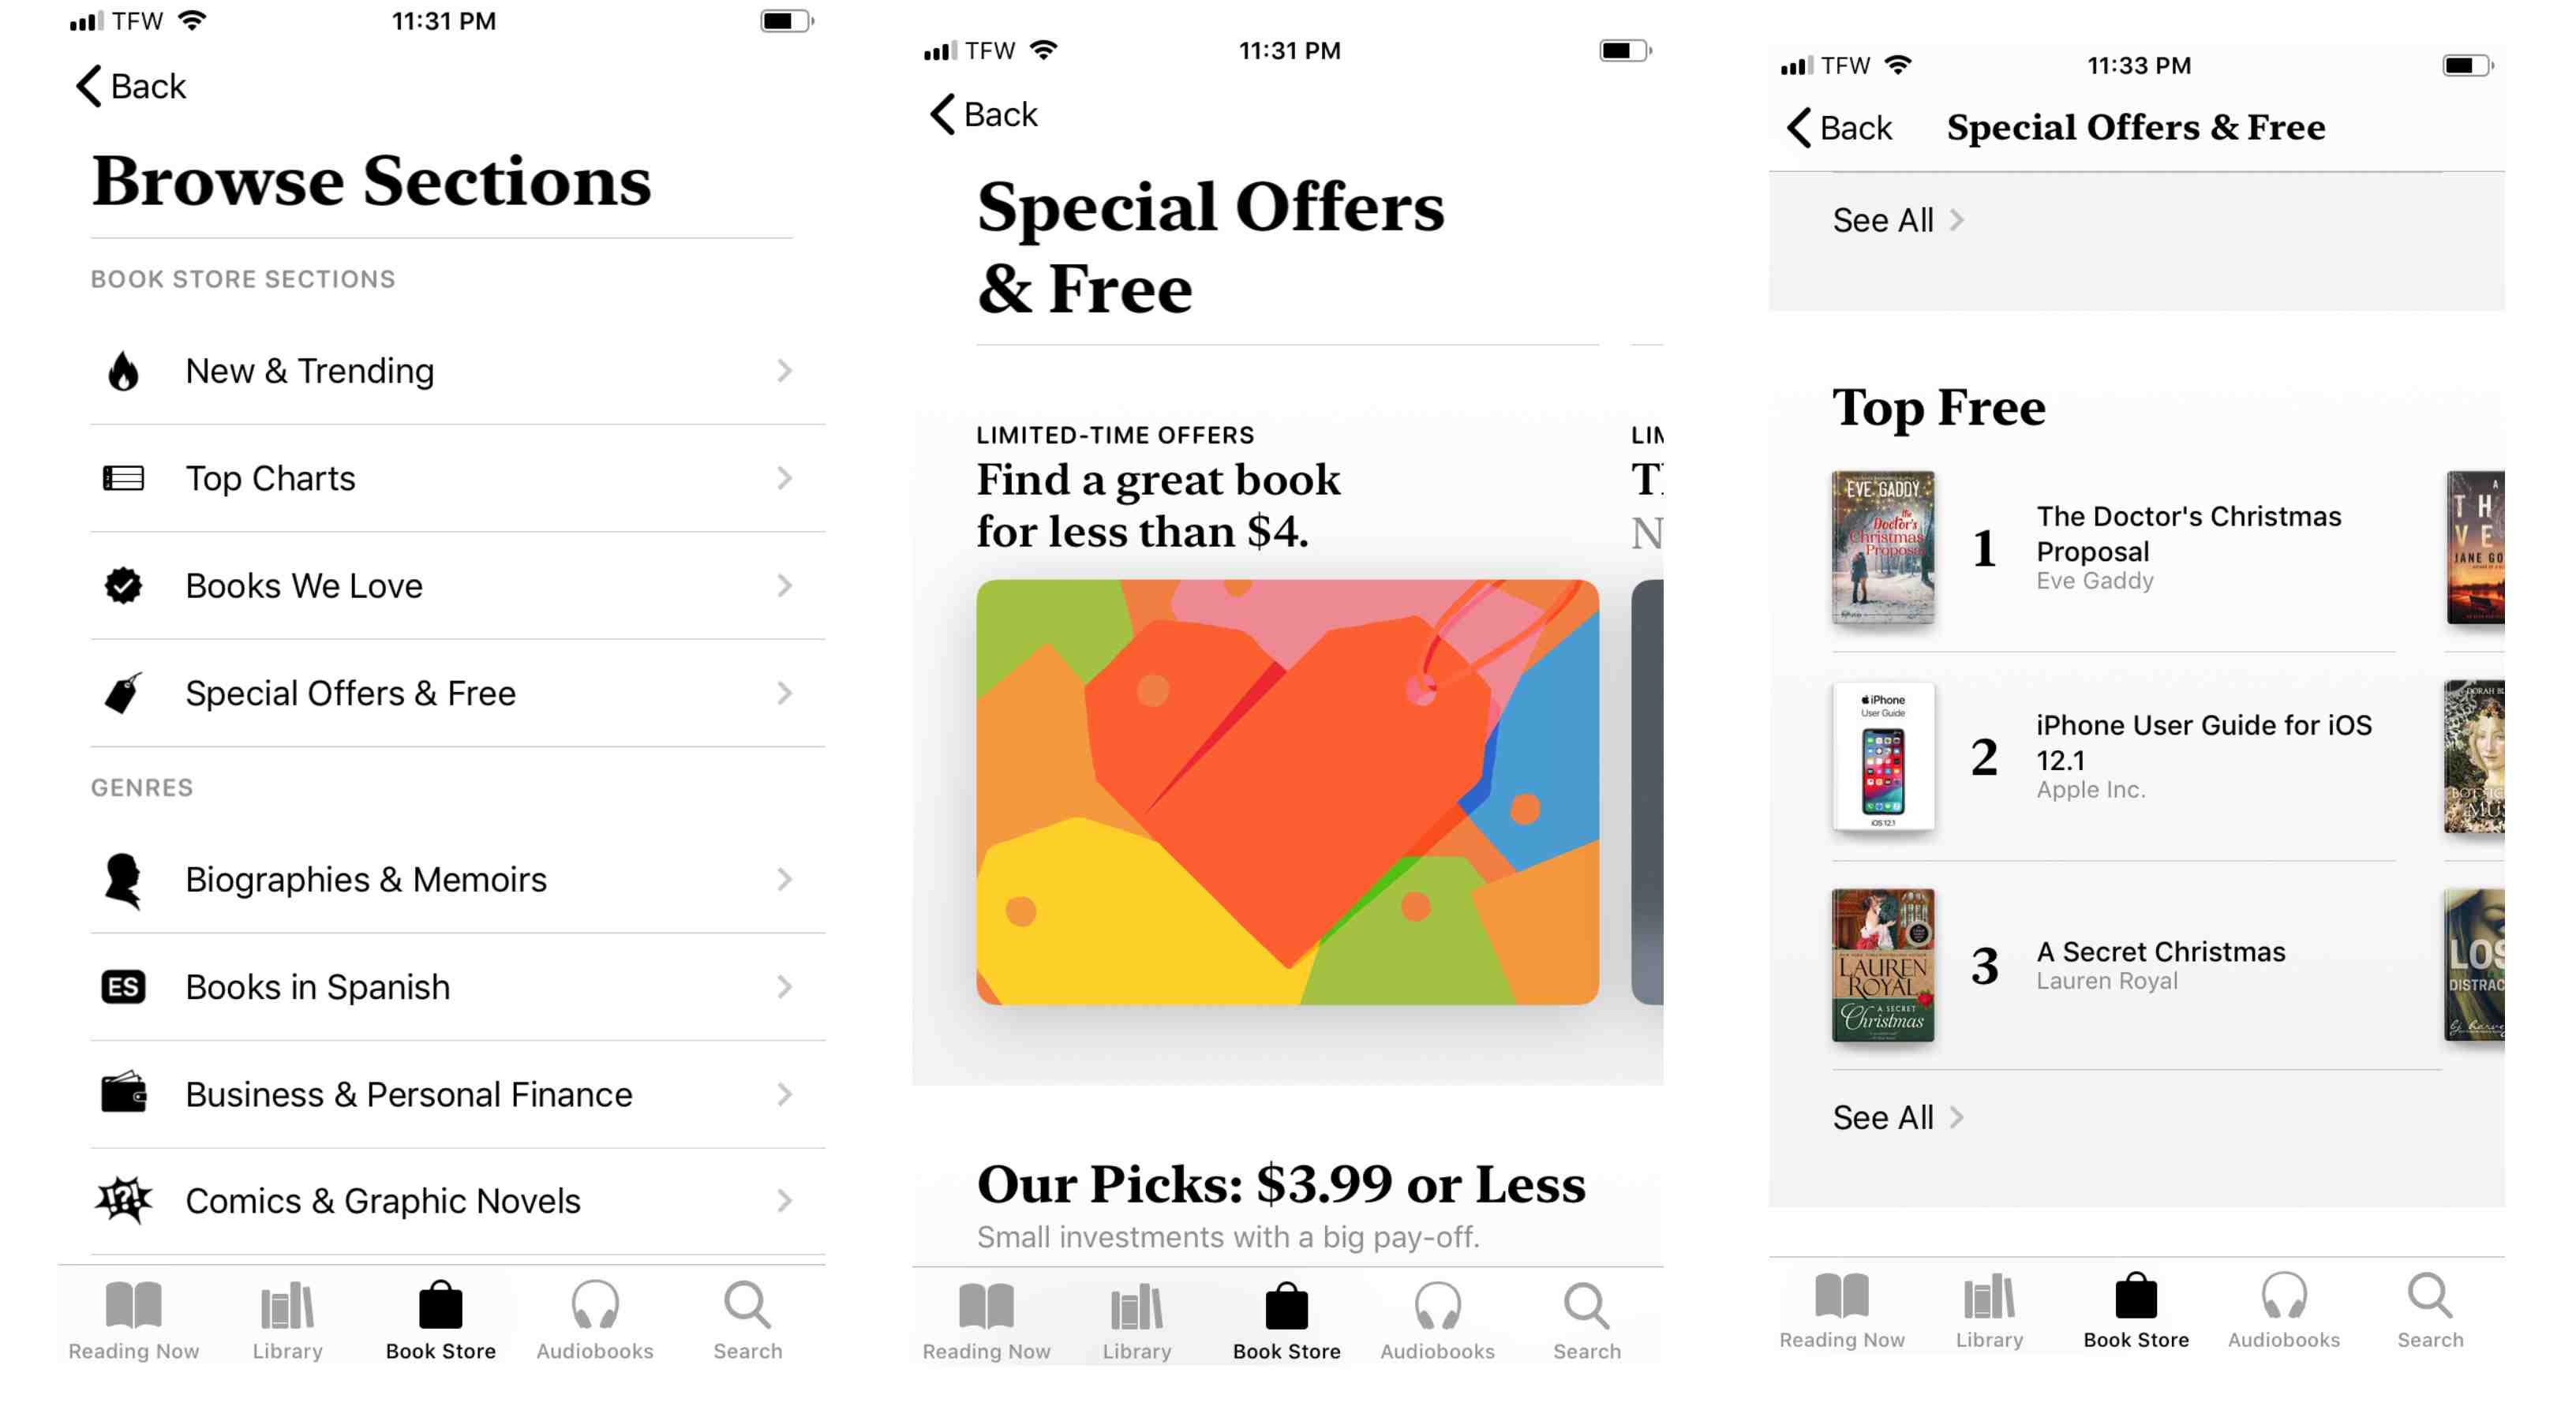 Screenshot of Special Offers and Free section on iPhone